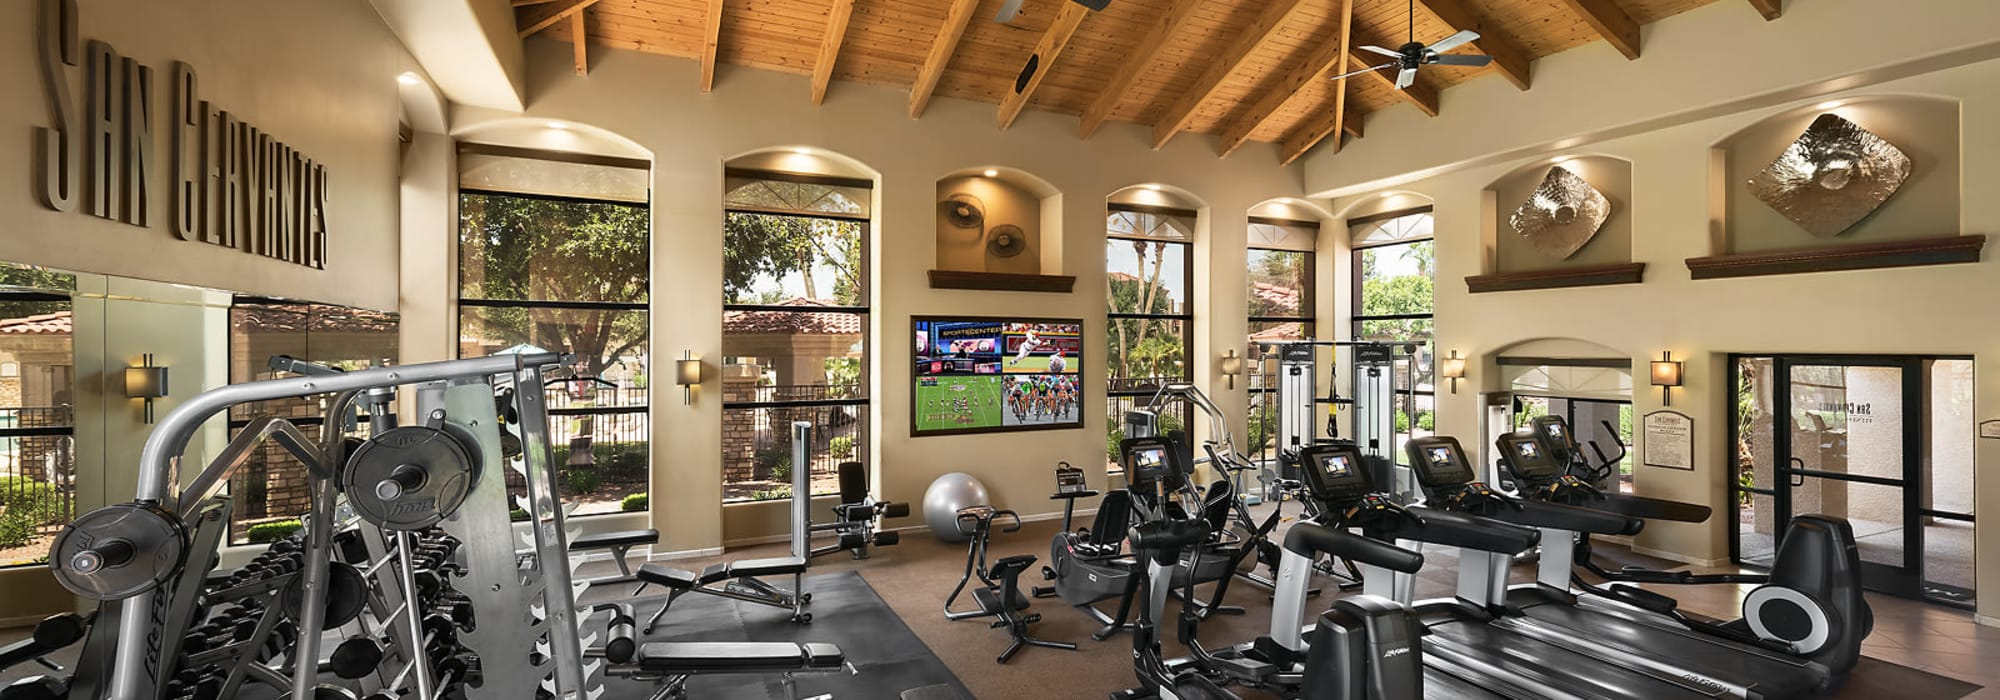 Fitness center at San Cervantes in Chandler, Arizona